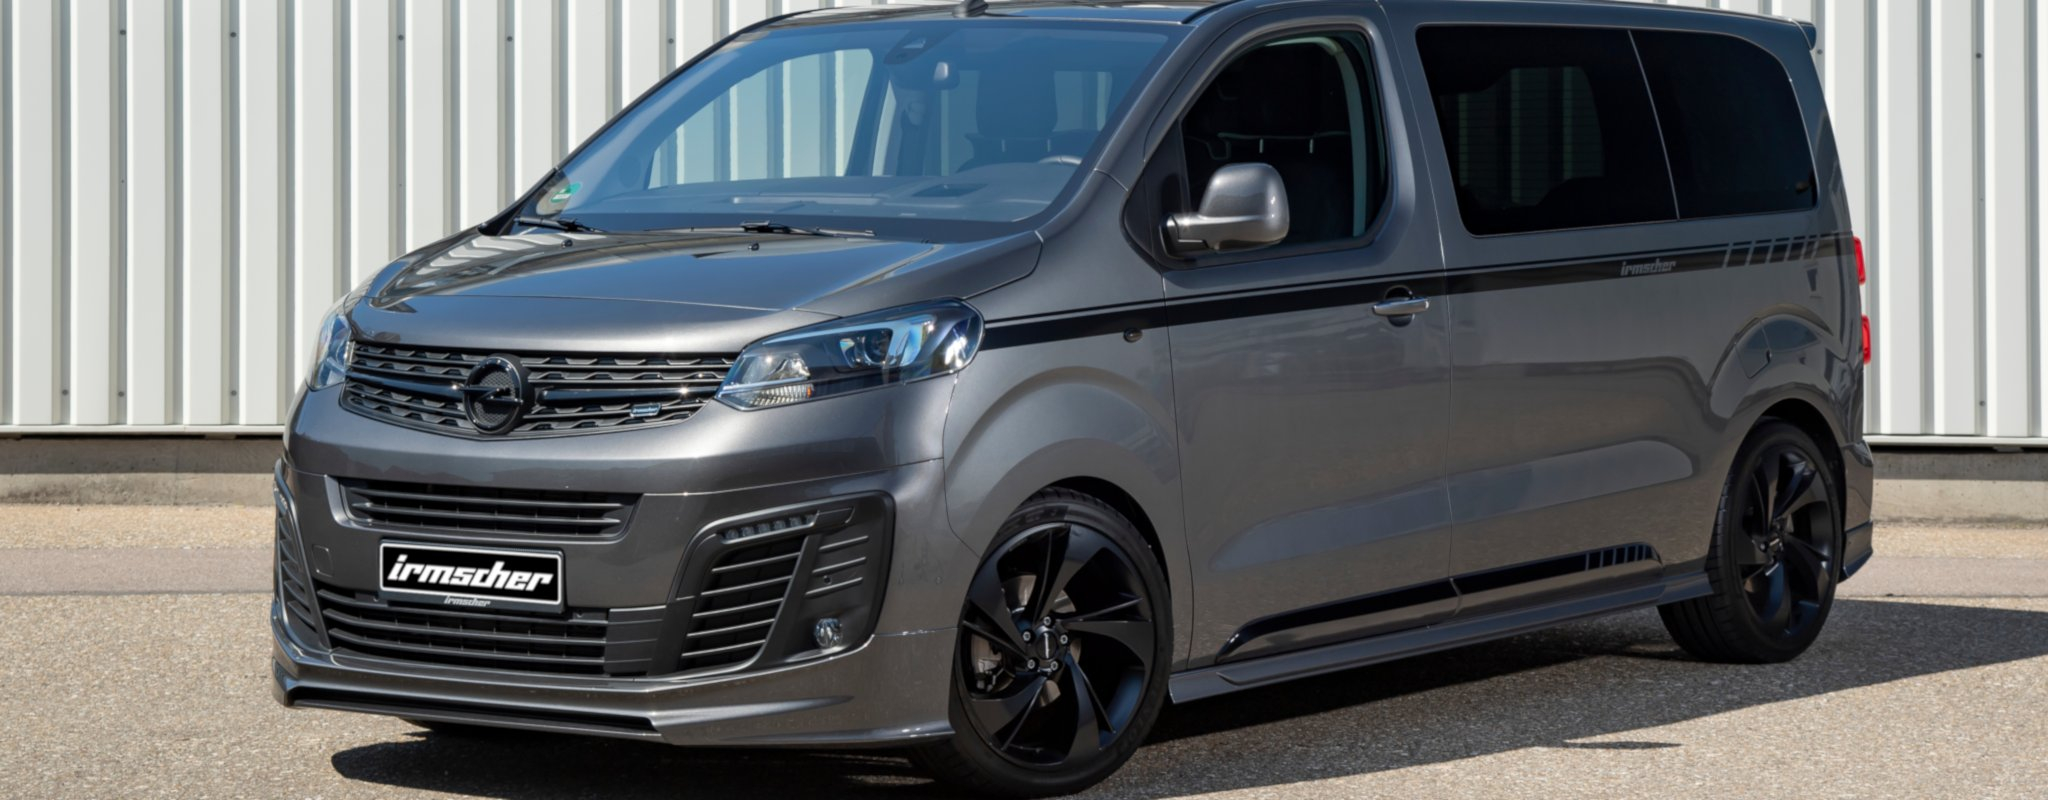 "Vivaro is3 ""Black Phantom"""